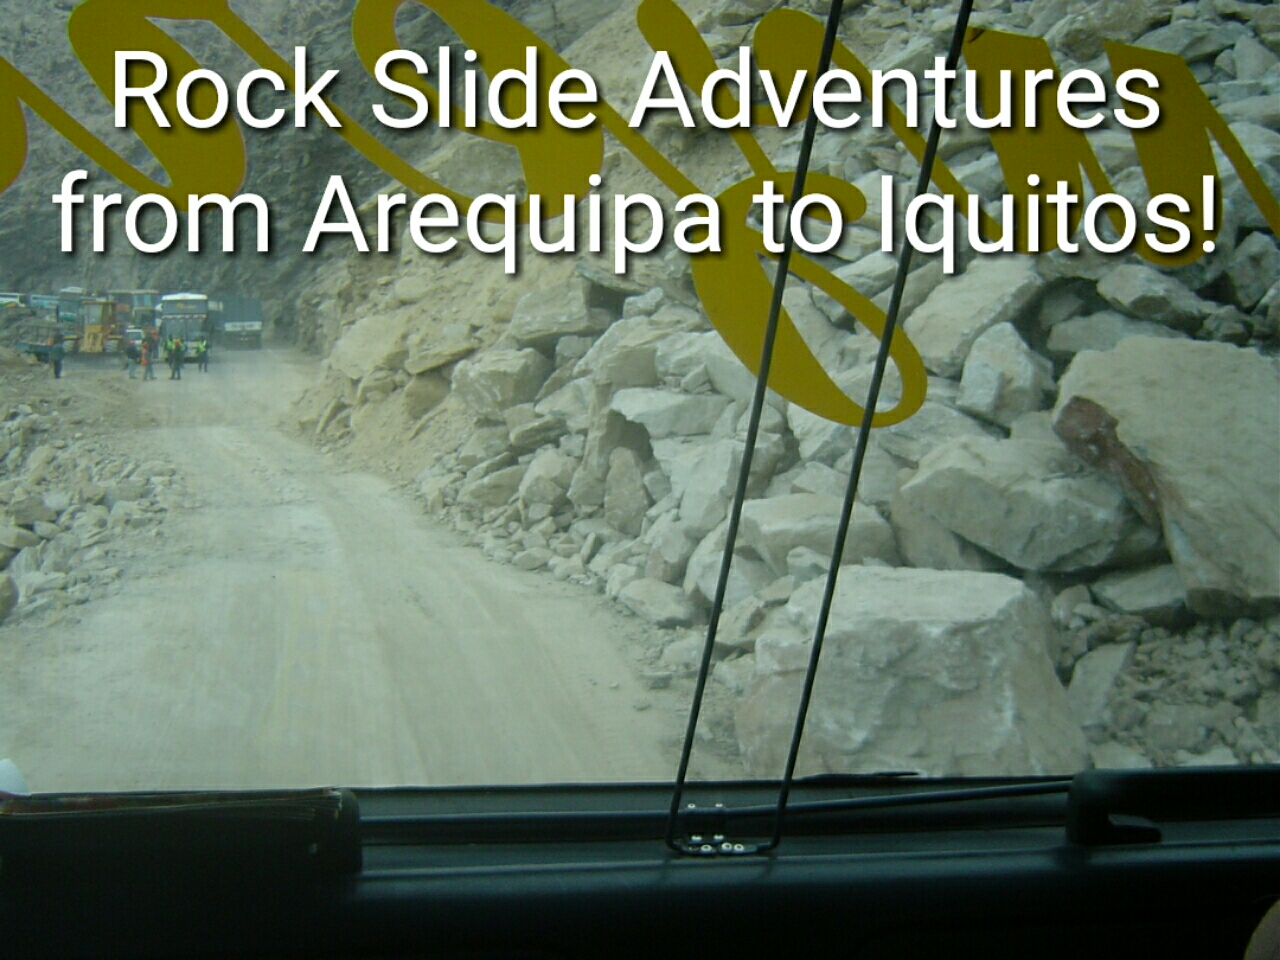 Rock Slide Adventures from Arequipa to Iquitos!